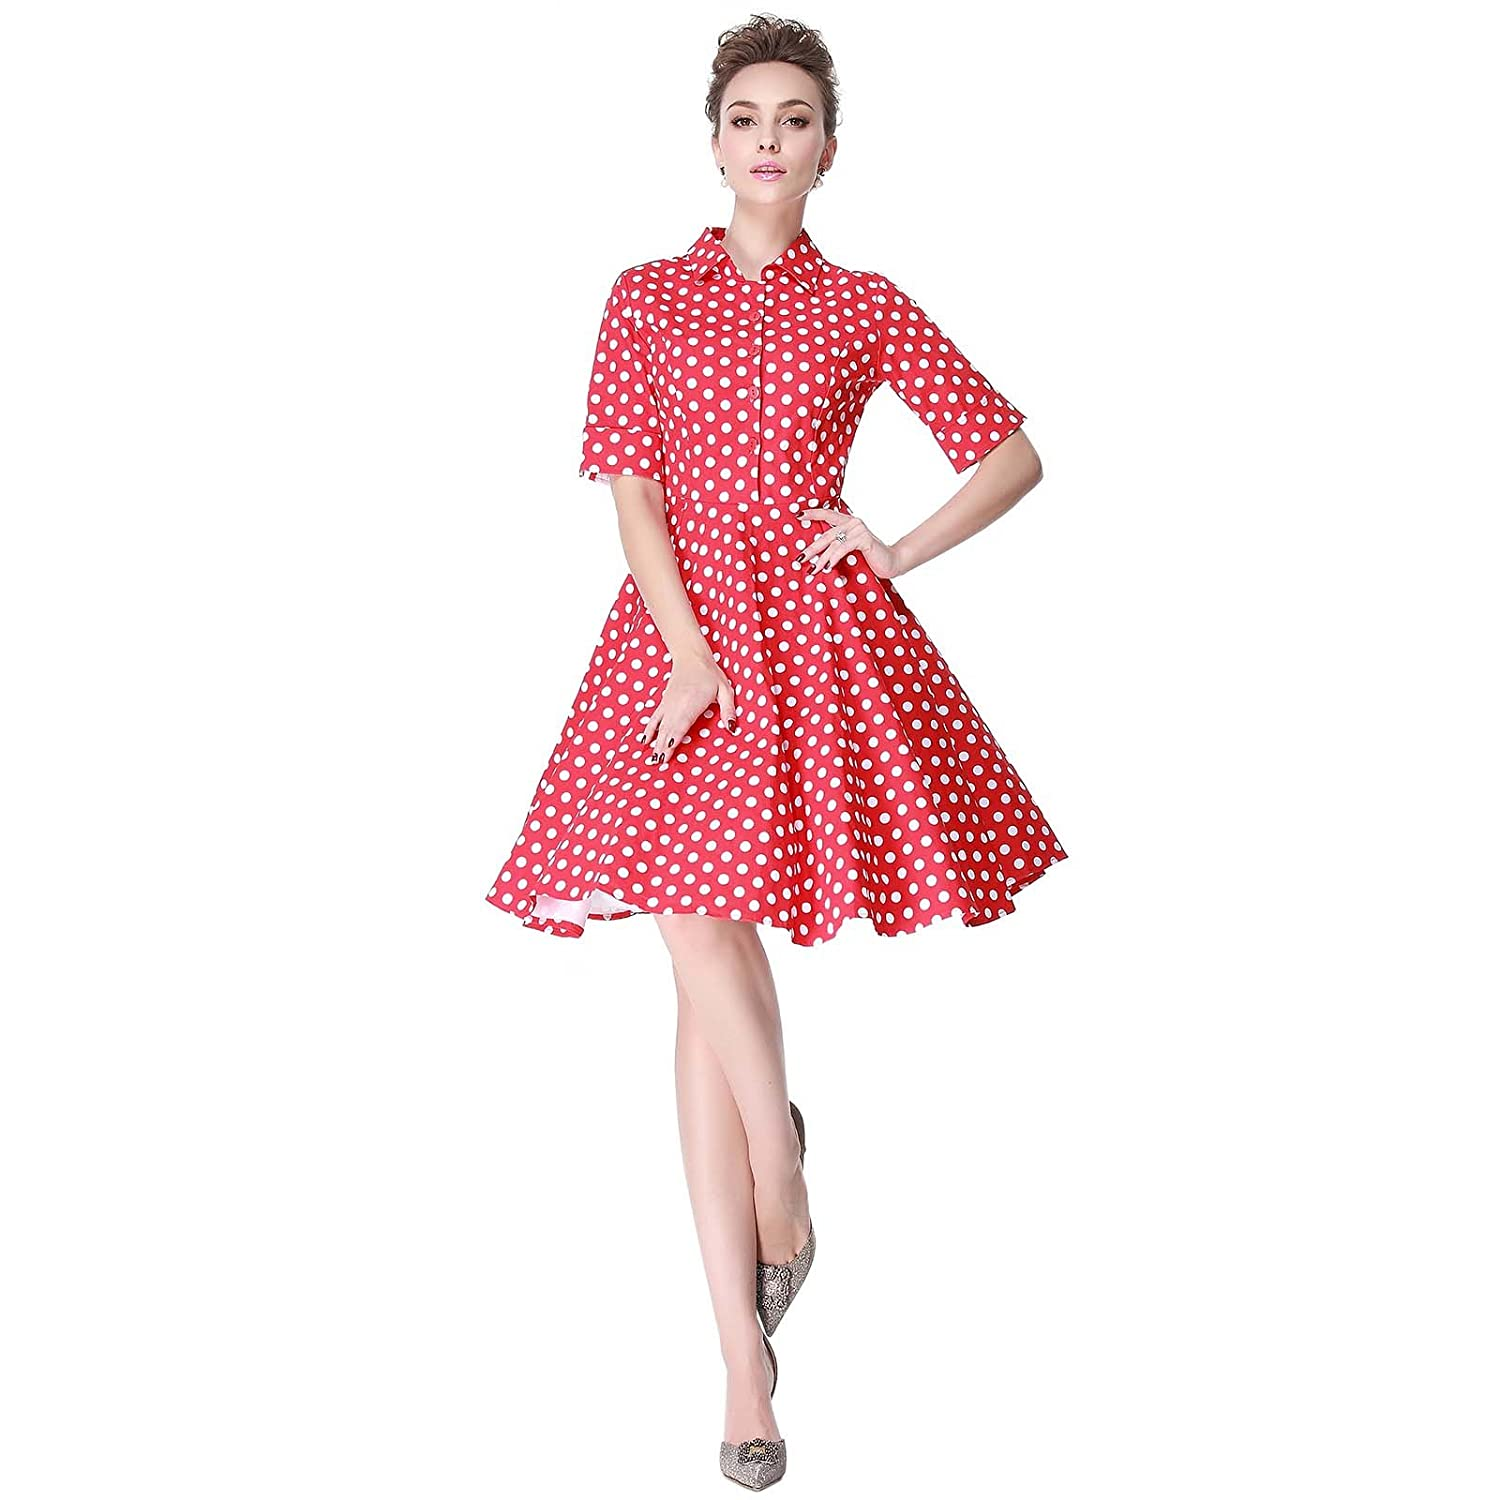 Vintage Polka Dot Dresses – Ditsy 50s Prints Heroecol Womens Vintage 1950s Dresses Polo Neck Short Sleeve 50s 60s Polka Dot Style Retro Swing Cotton Dress $21.99 AT vintagedancer.com